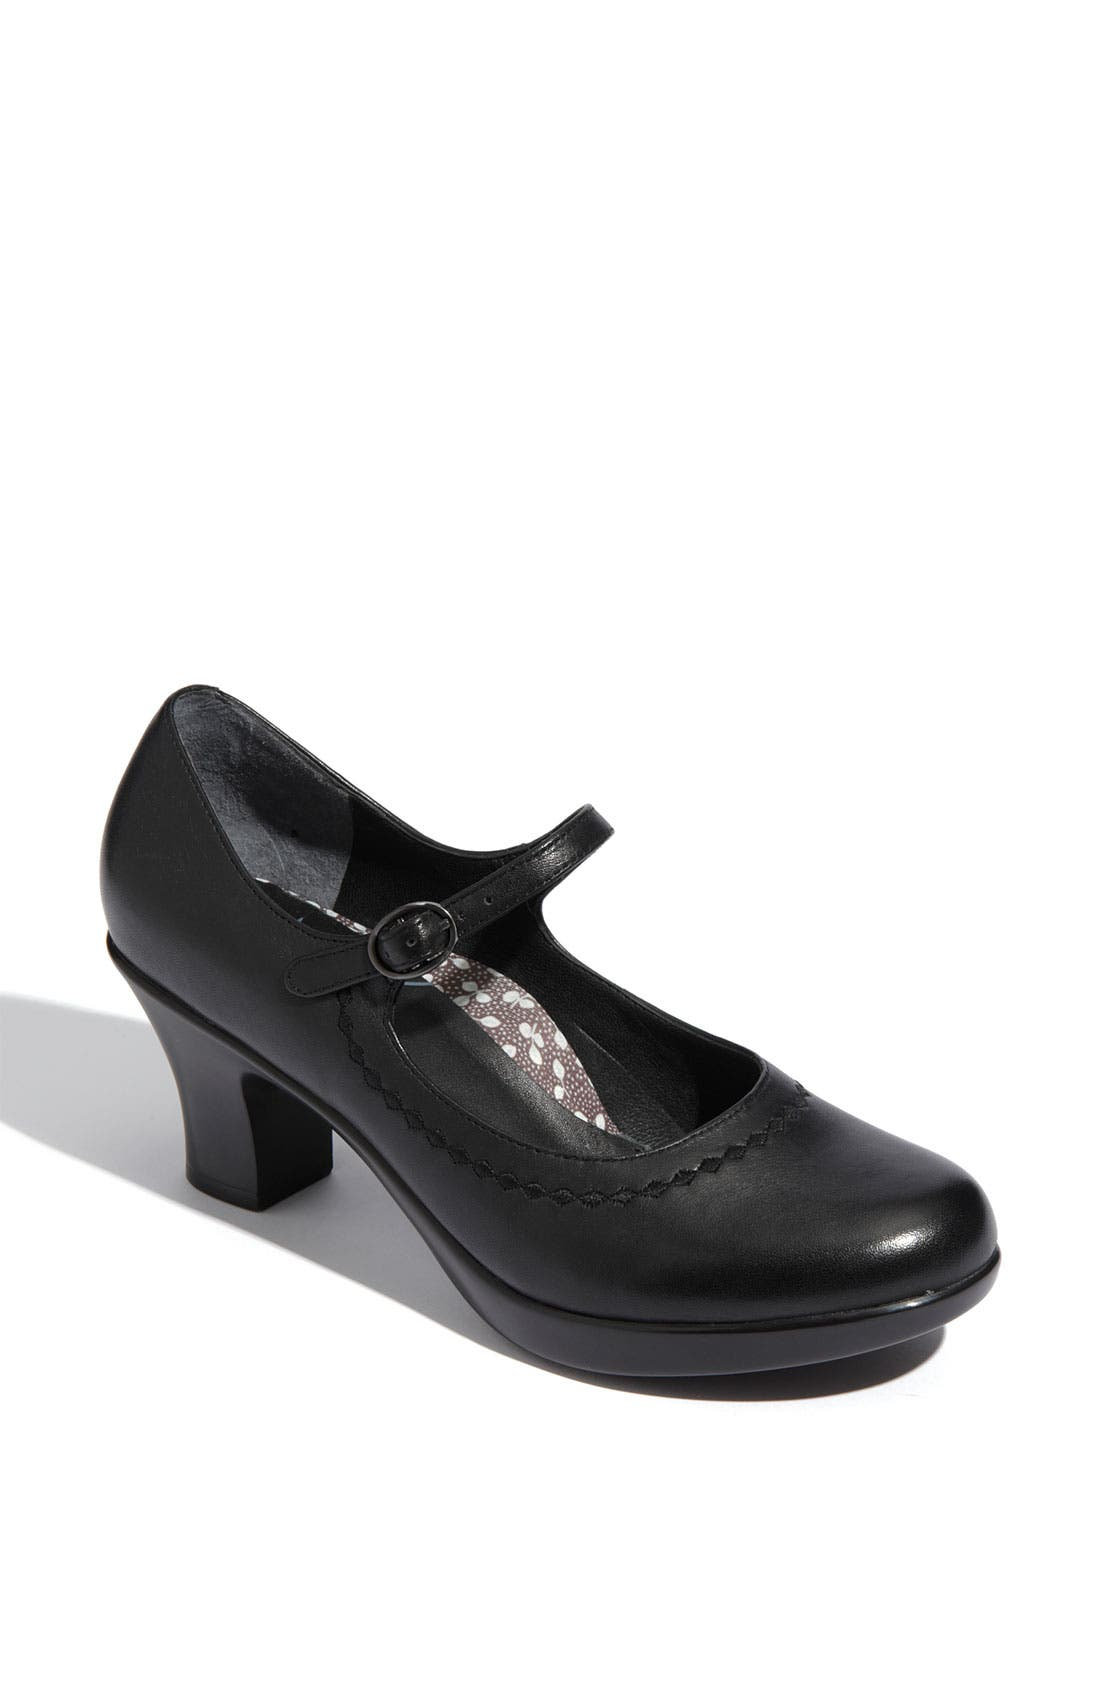 Alternate Image 1 Selected - Dansko 'Bett' Mary Jane